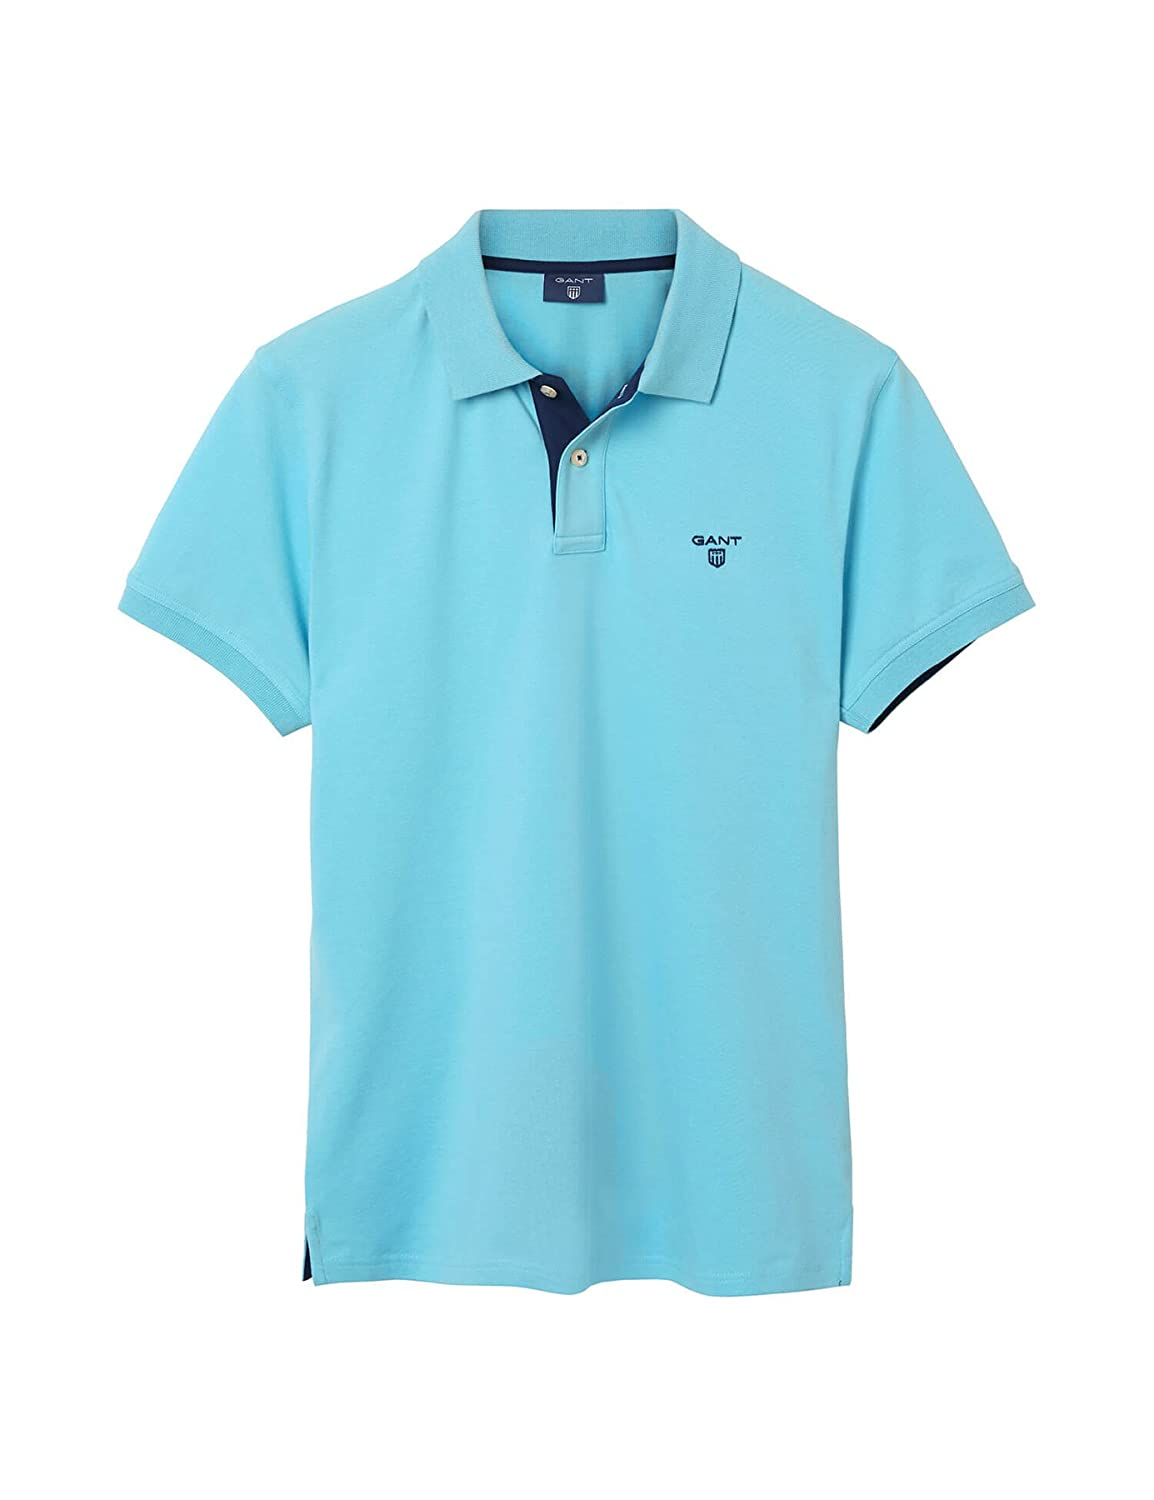 Gant MenS MenS Light Blue Polo T-Shirt In Slim Fit In Size M ...